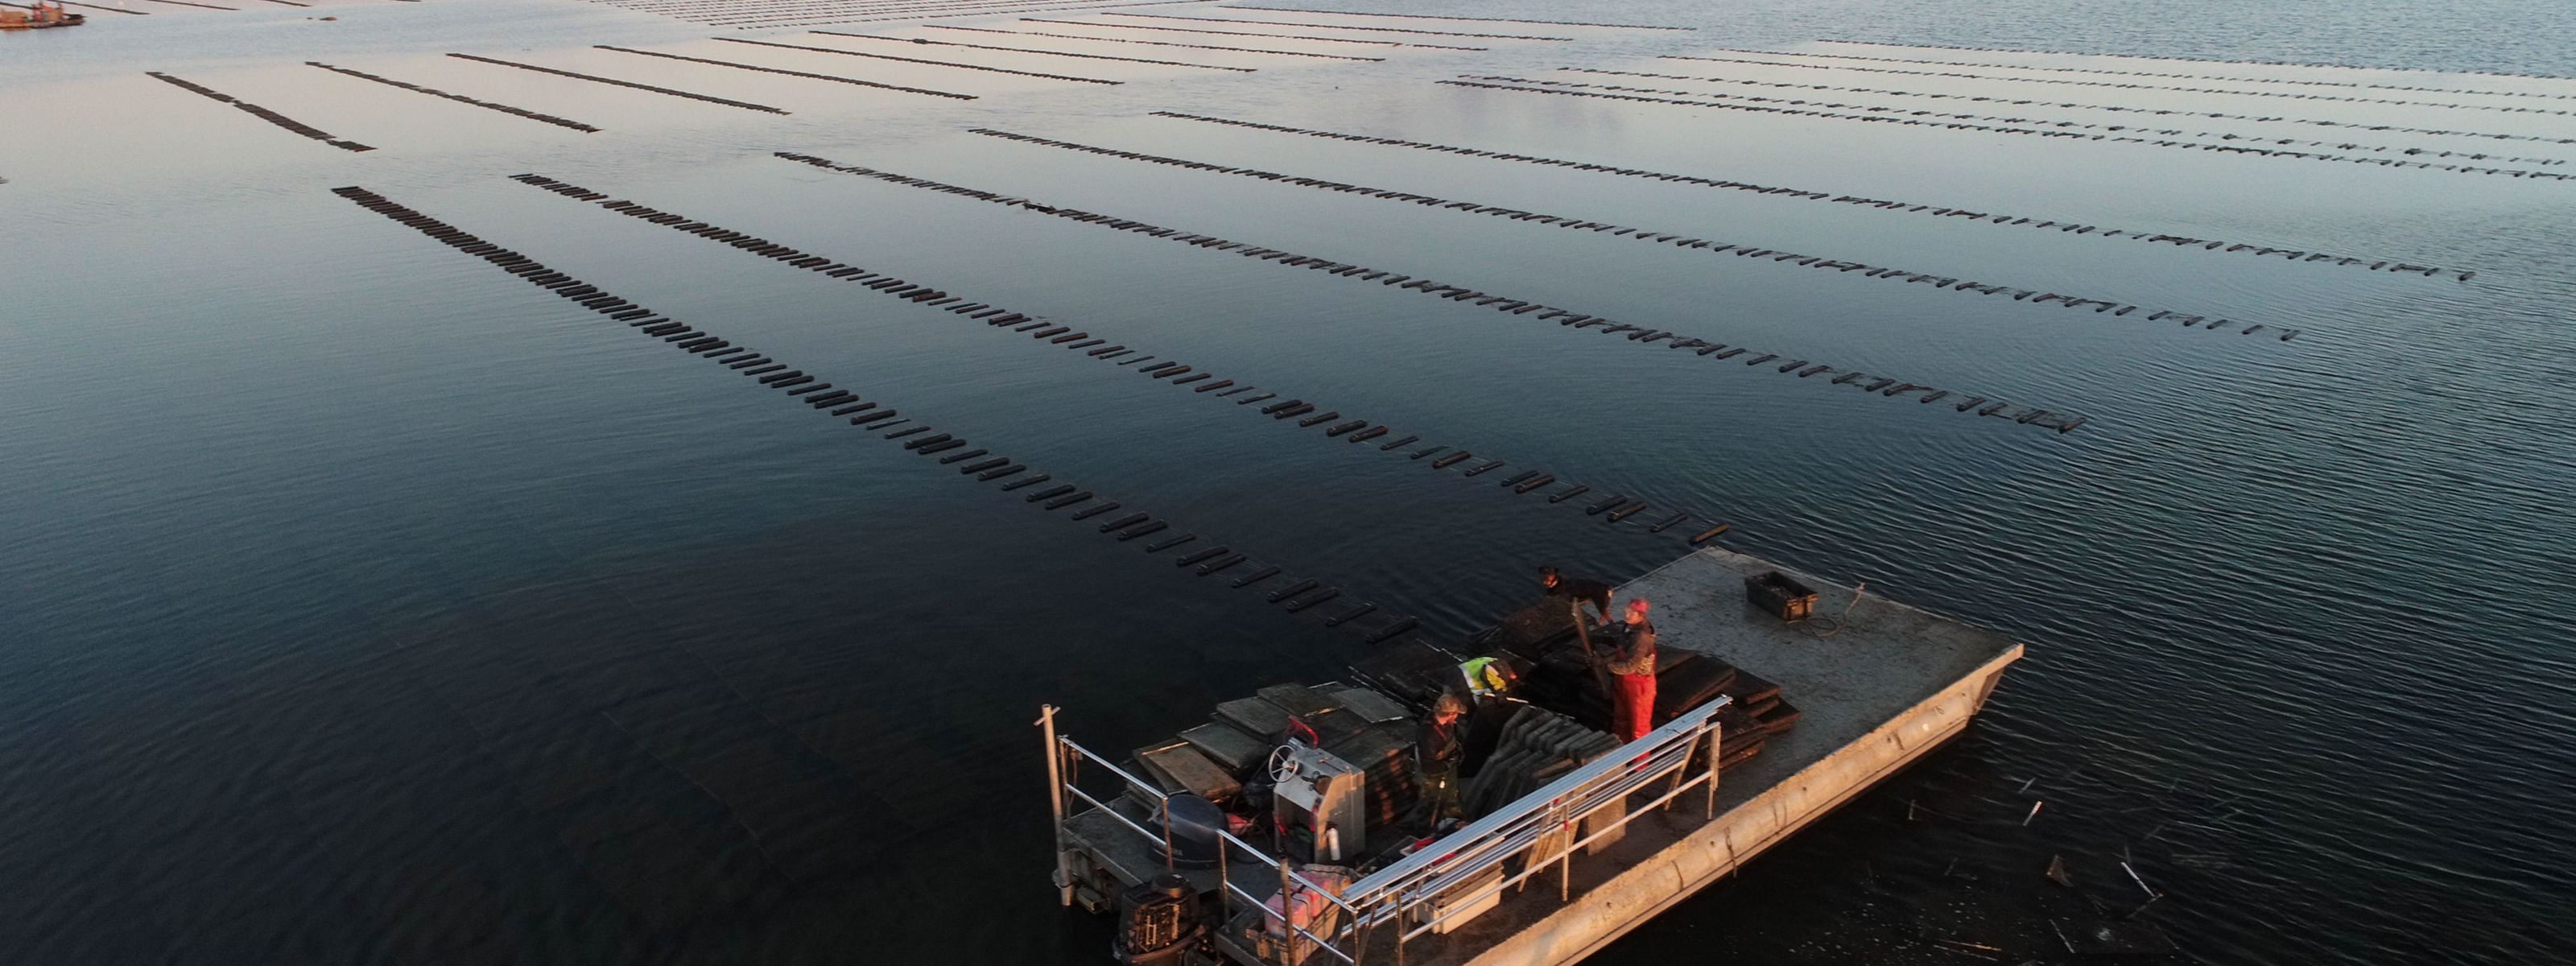 An aerial view of oyster cages and an oyster boat on the water.